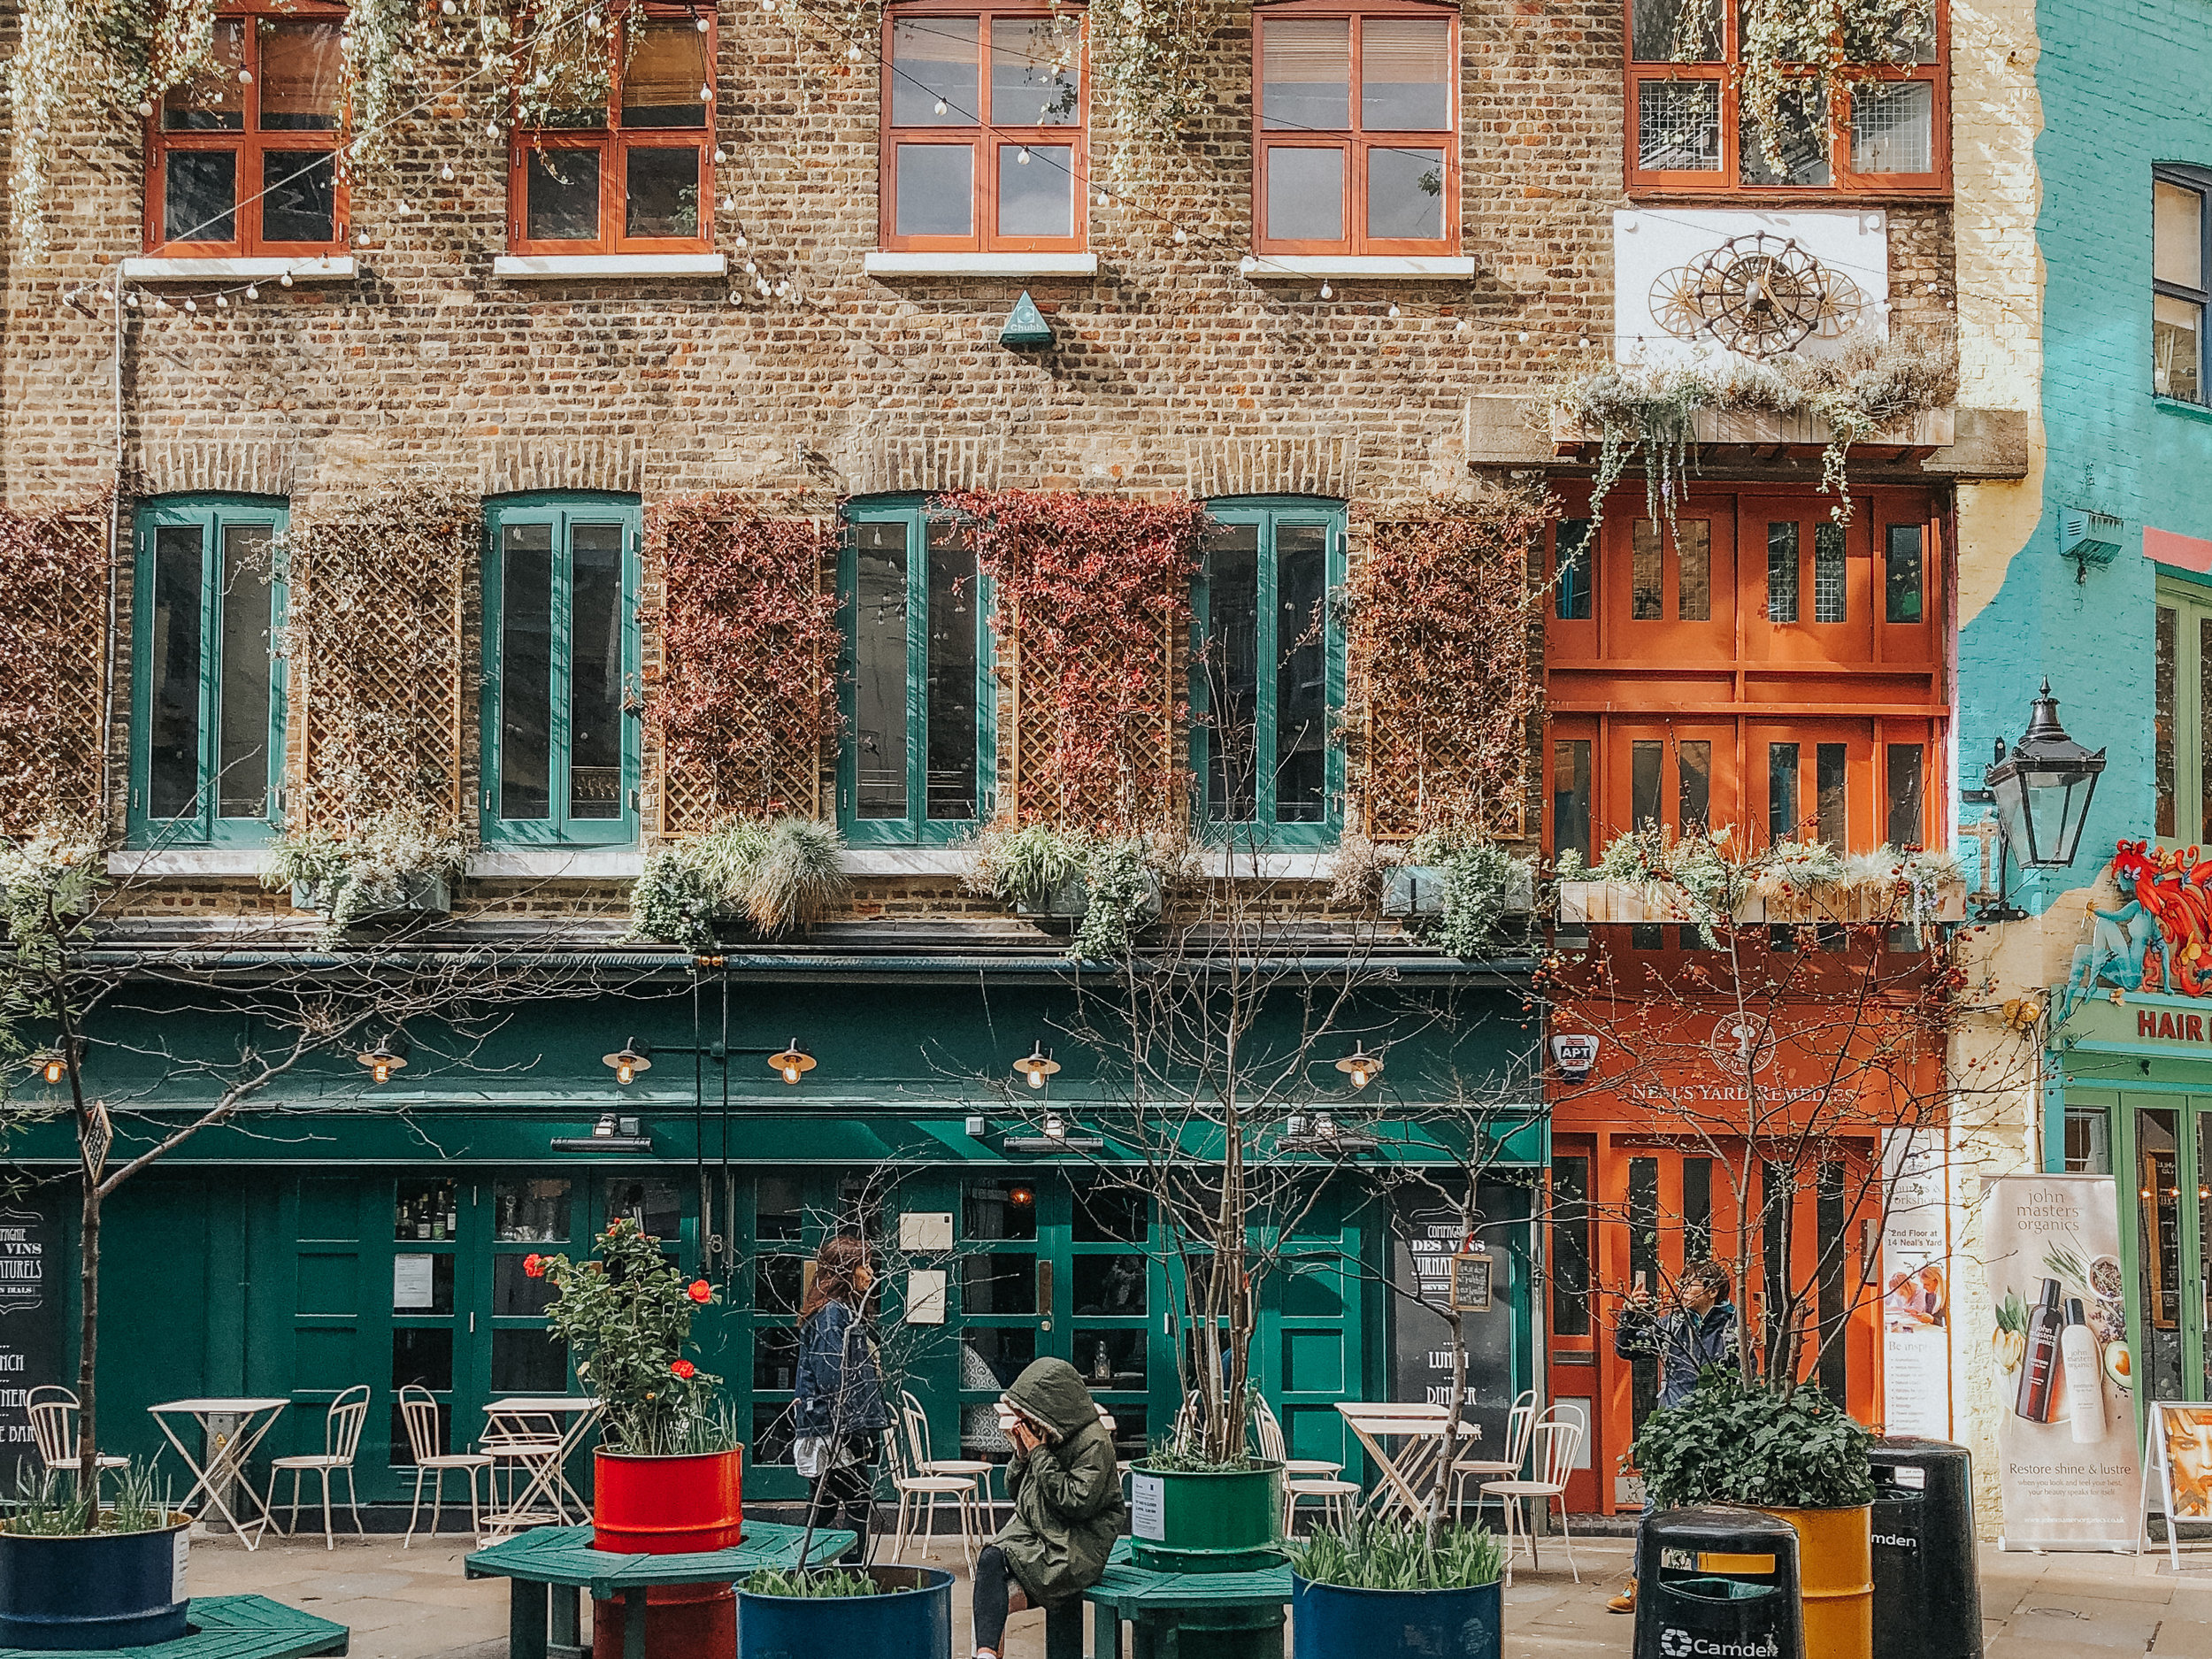 Neal's Yard is a little courtyard tucked away in a side street in Covent Garden. It's here where you can find the eponymous Neal's Yard Remedies store among other cafés and shops specializing in health and wellness.